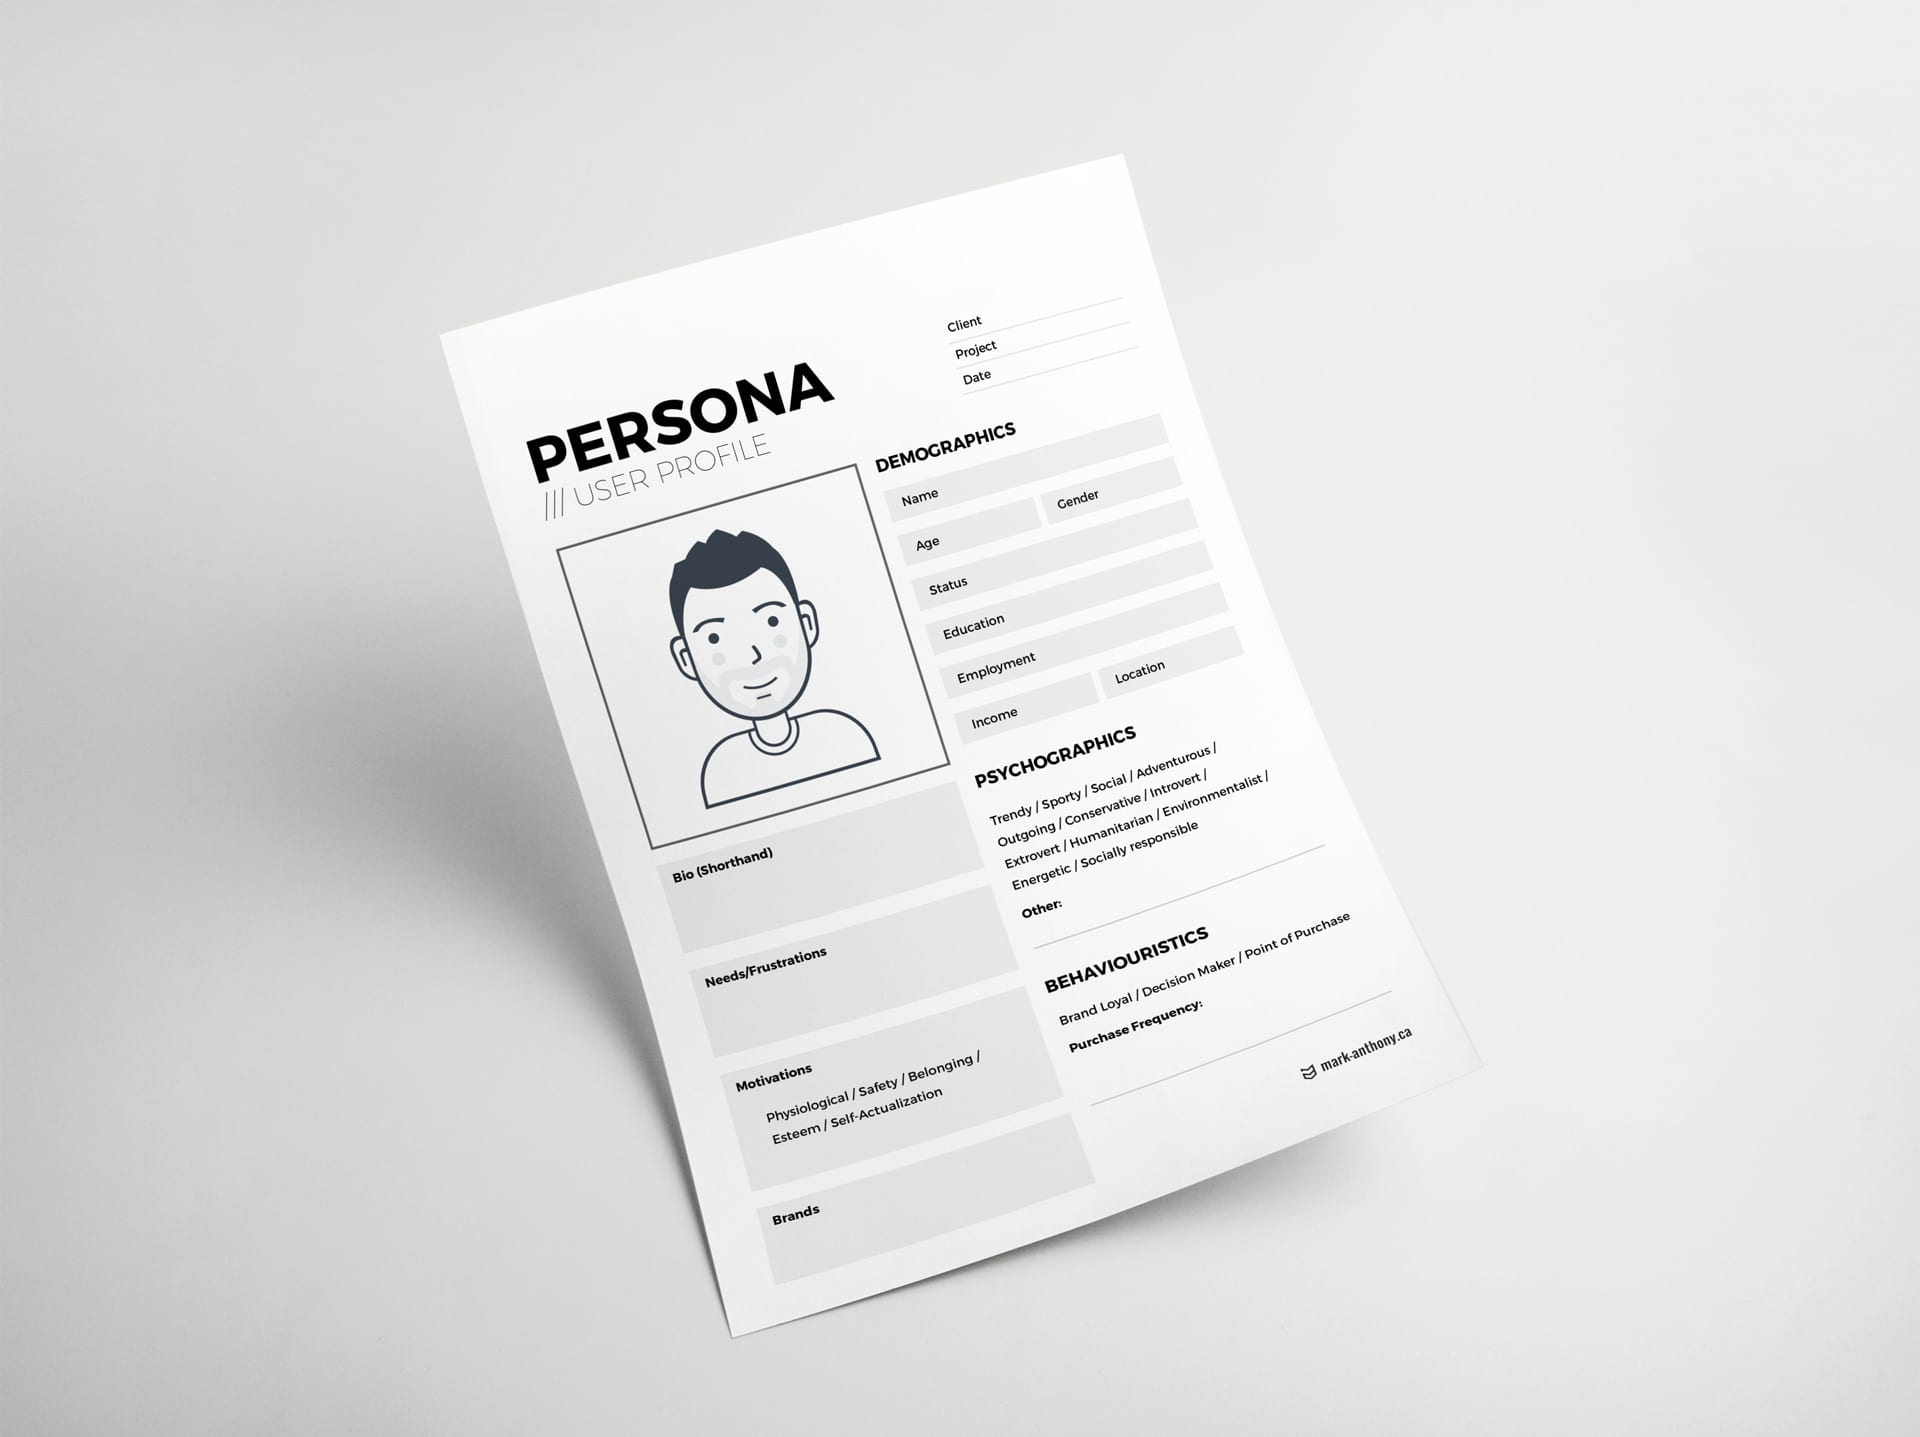 Mark Anthony Karam Free user persona PDF template